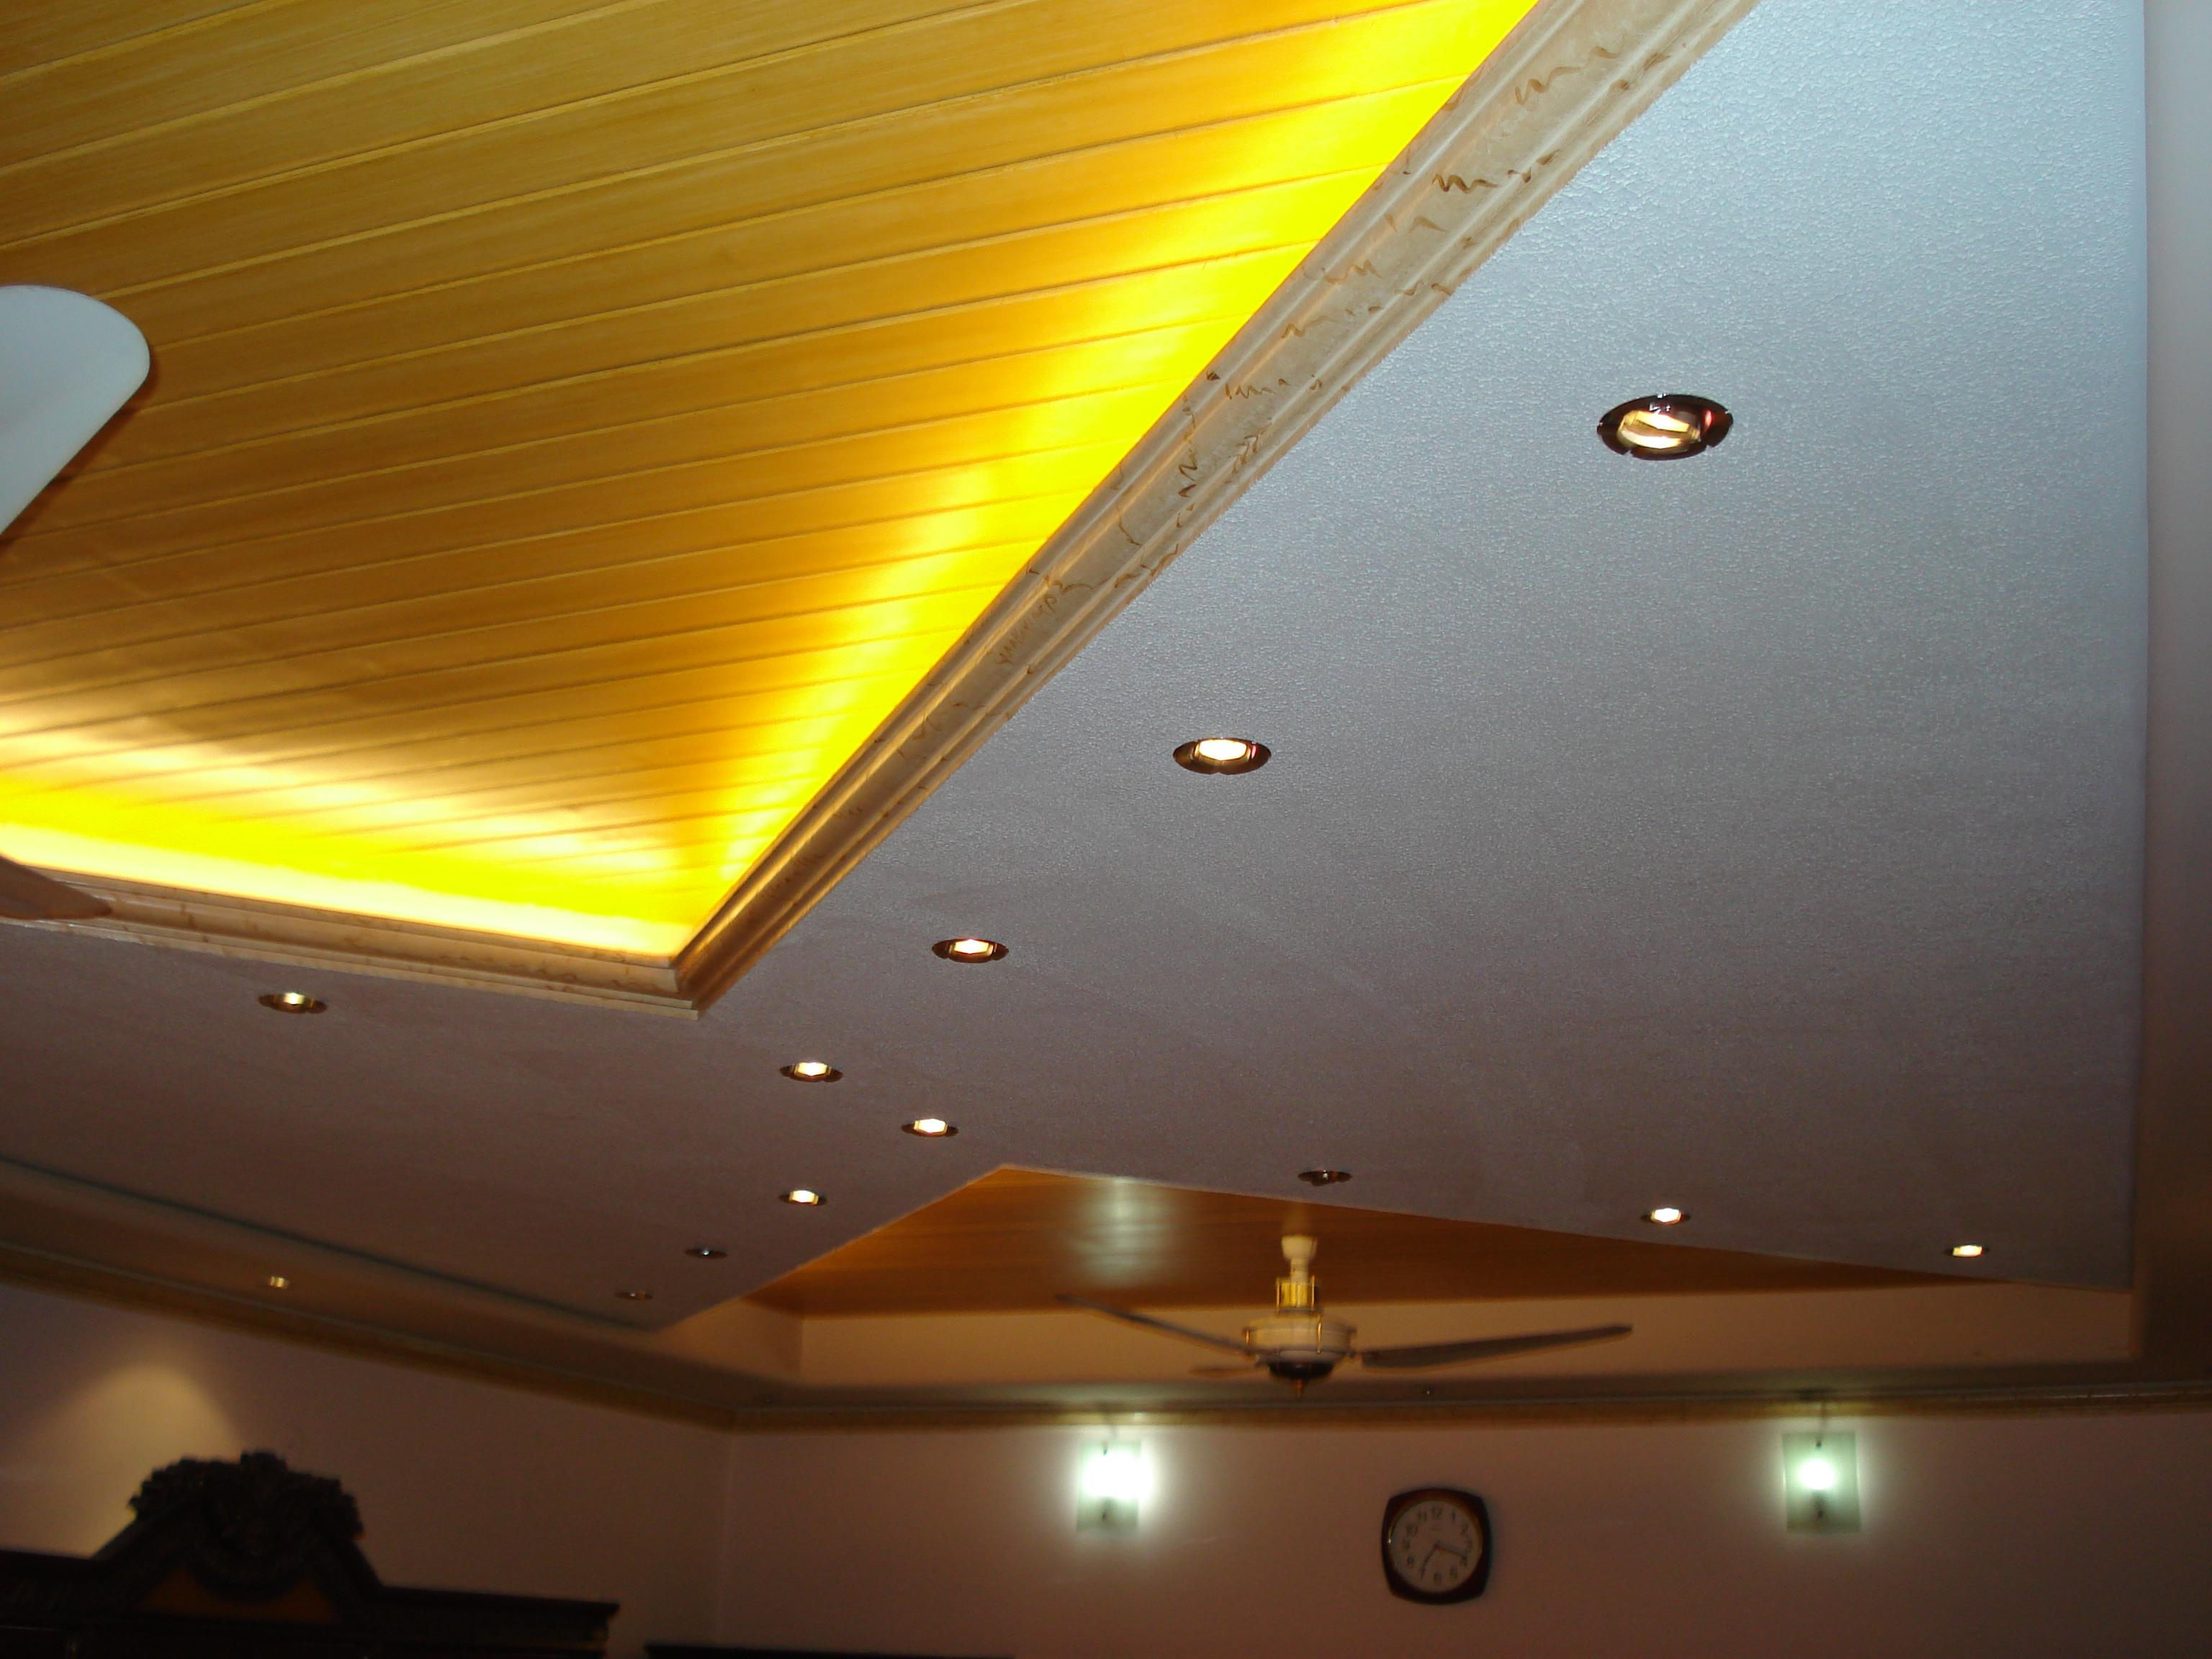 False ceiling design with yellow lighting gharexpert - Lights used in false ceiling ...